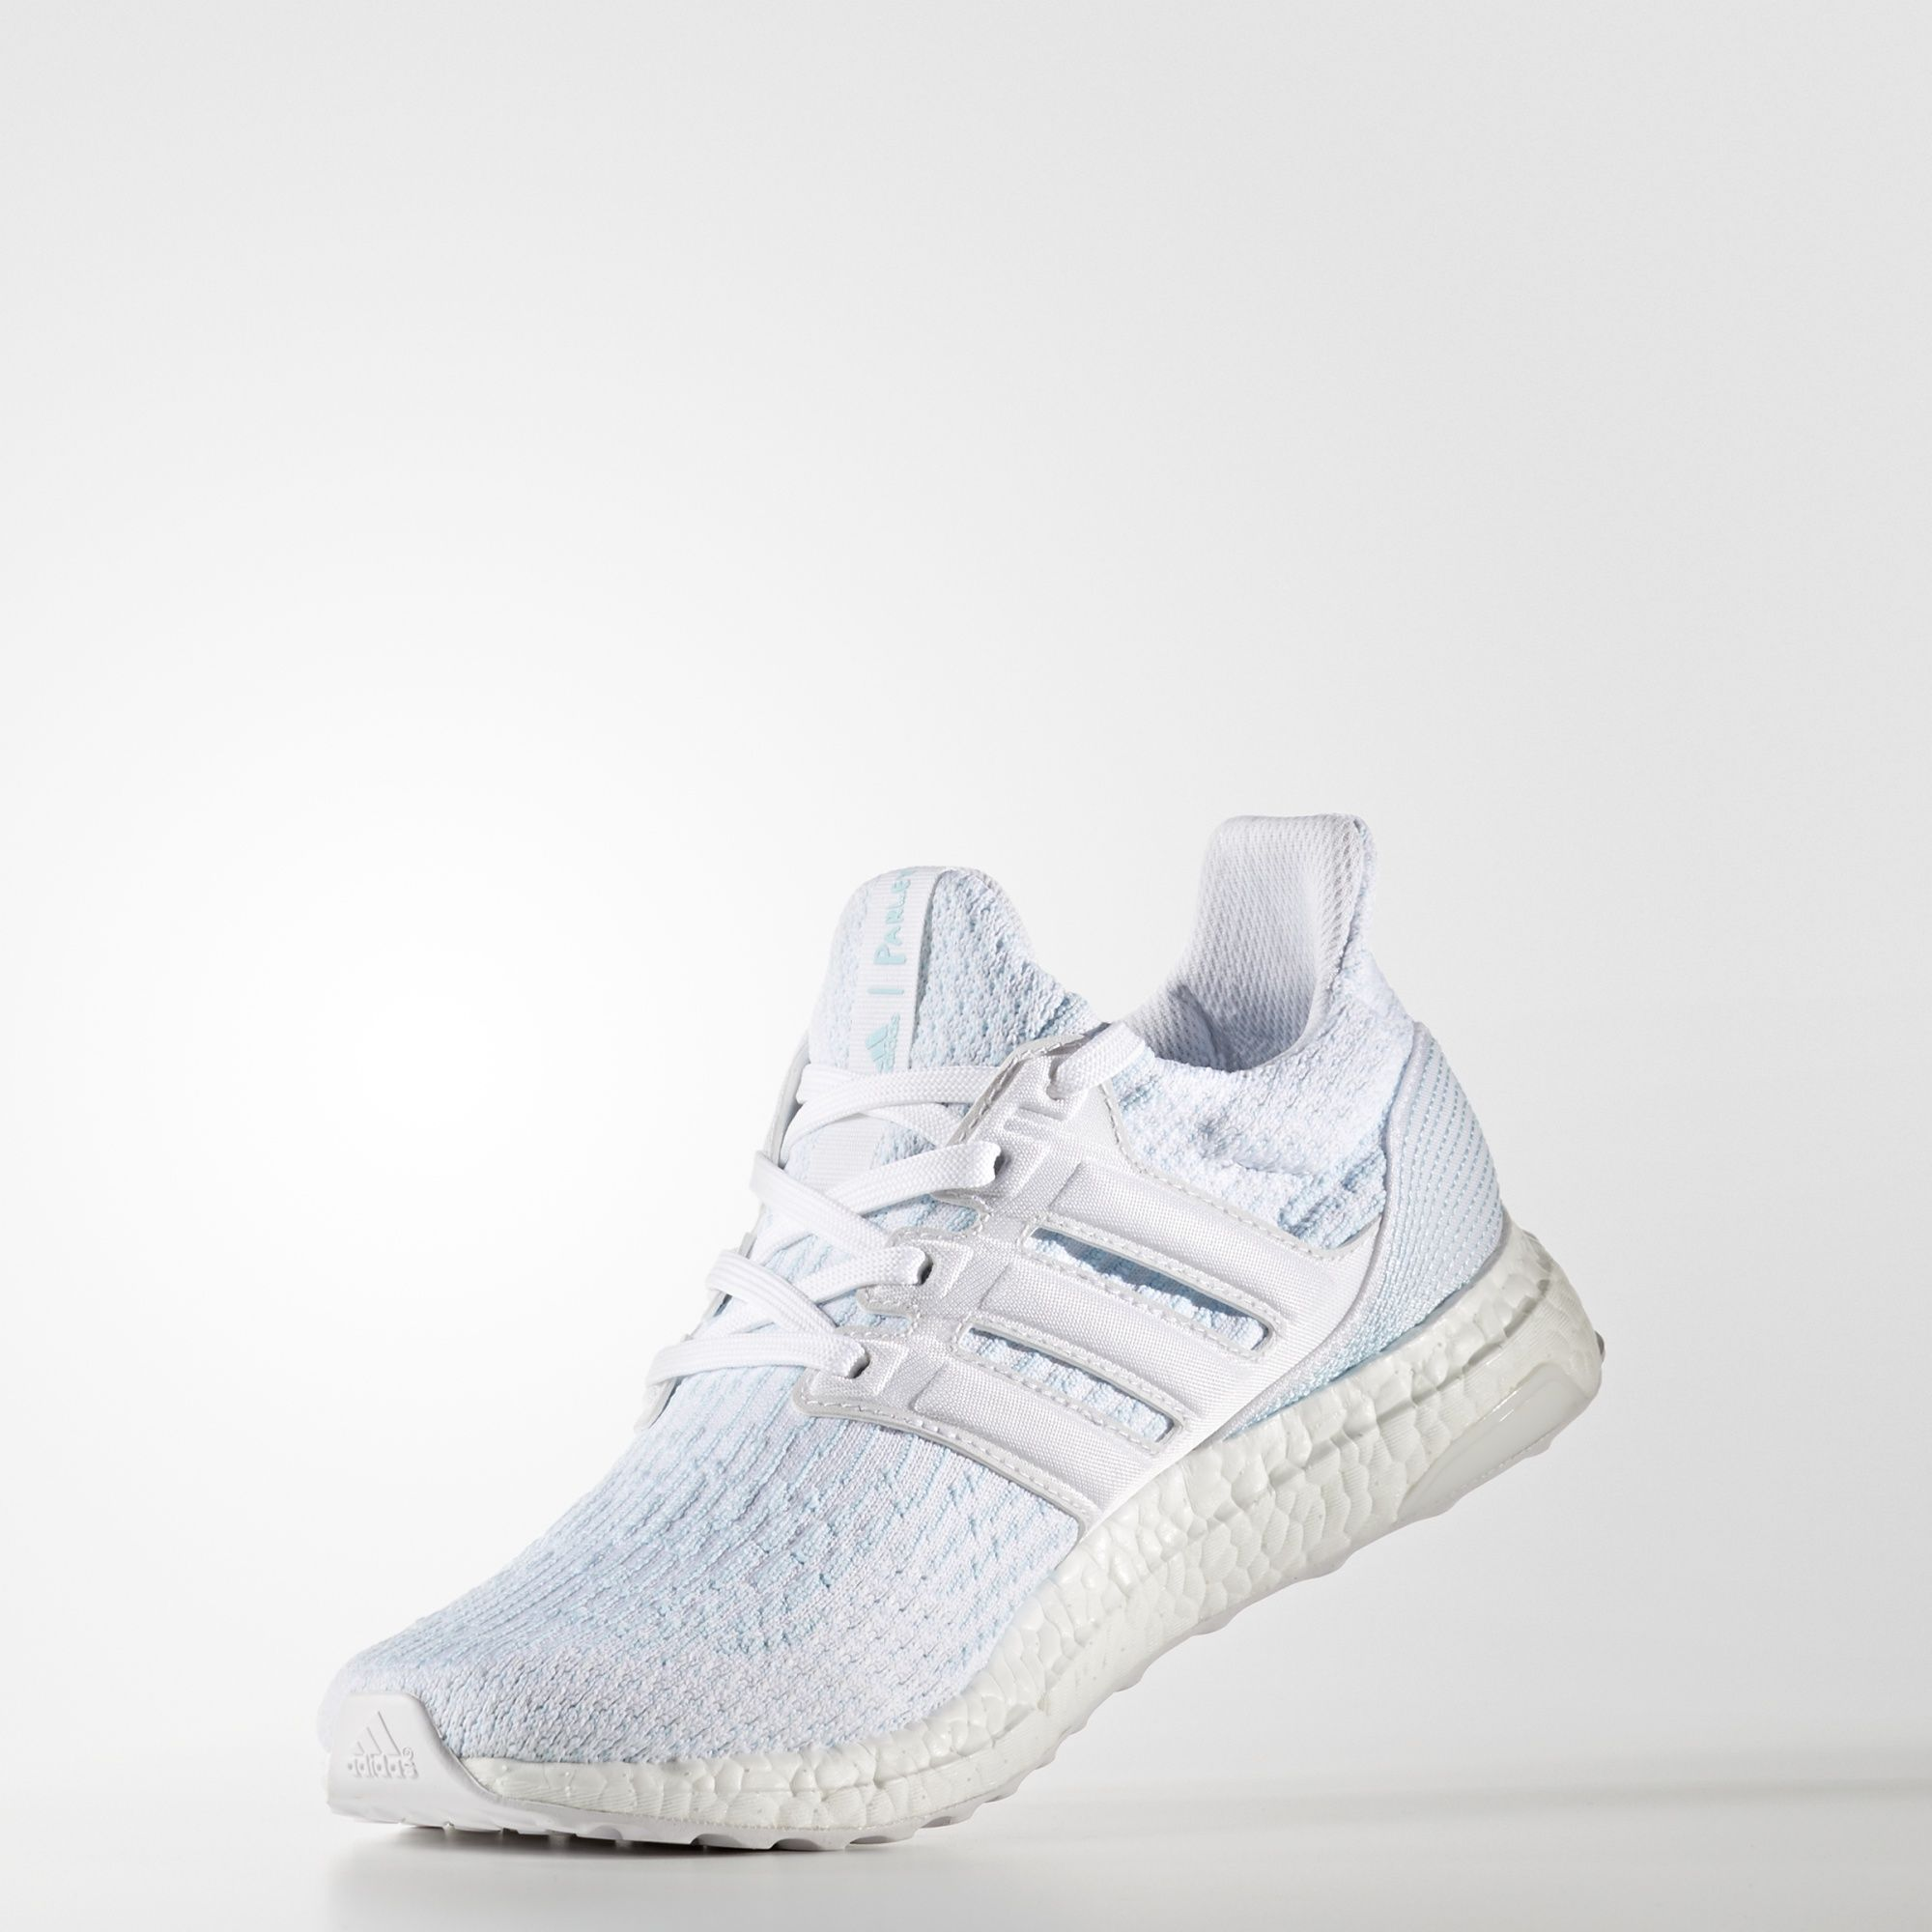 Parley x adidas Ultra Boost Icey Blue CP9685 2